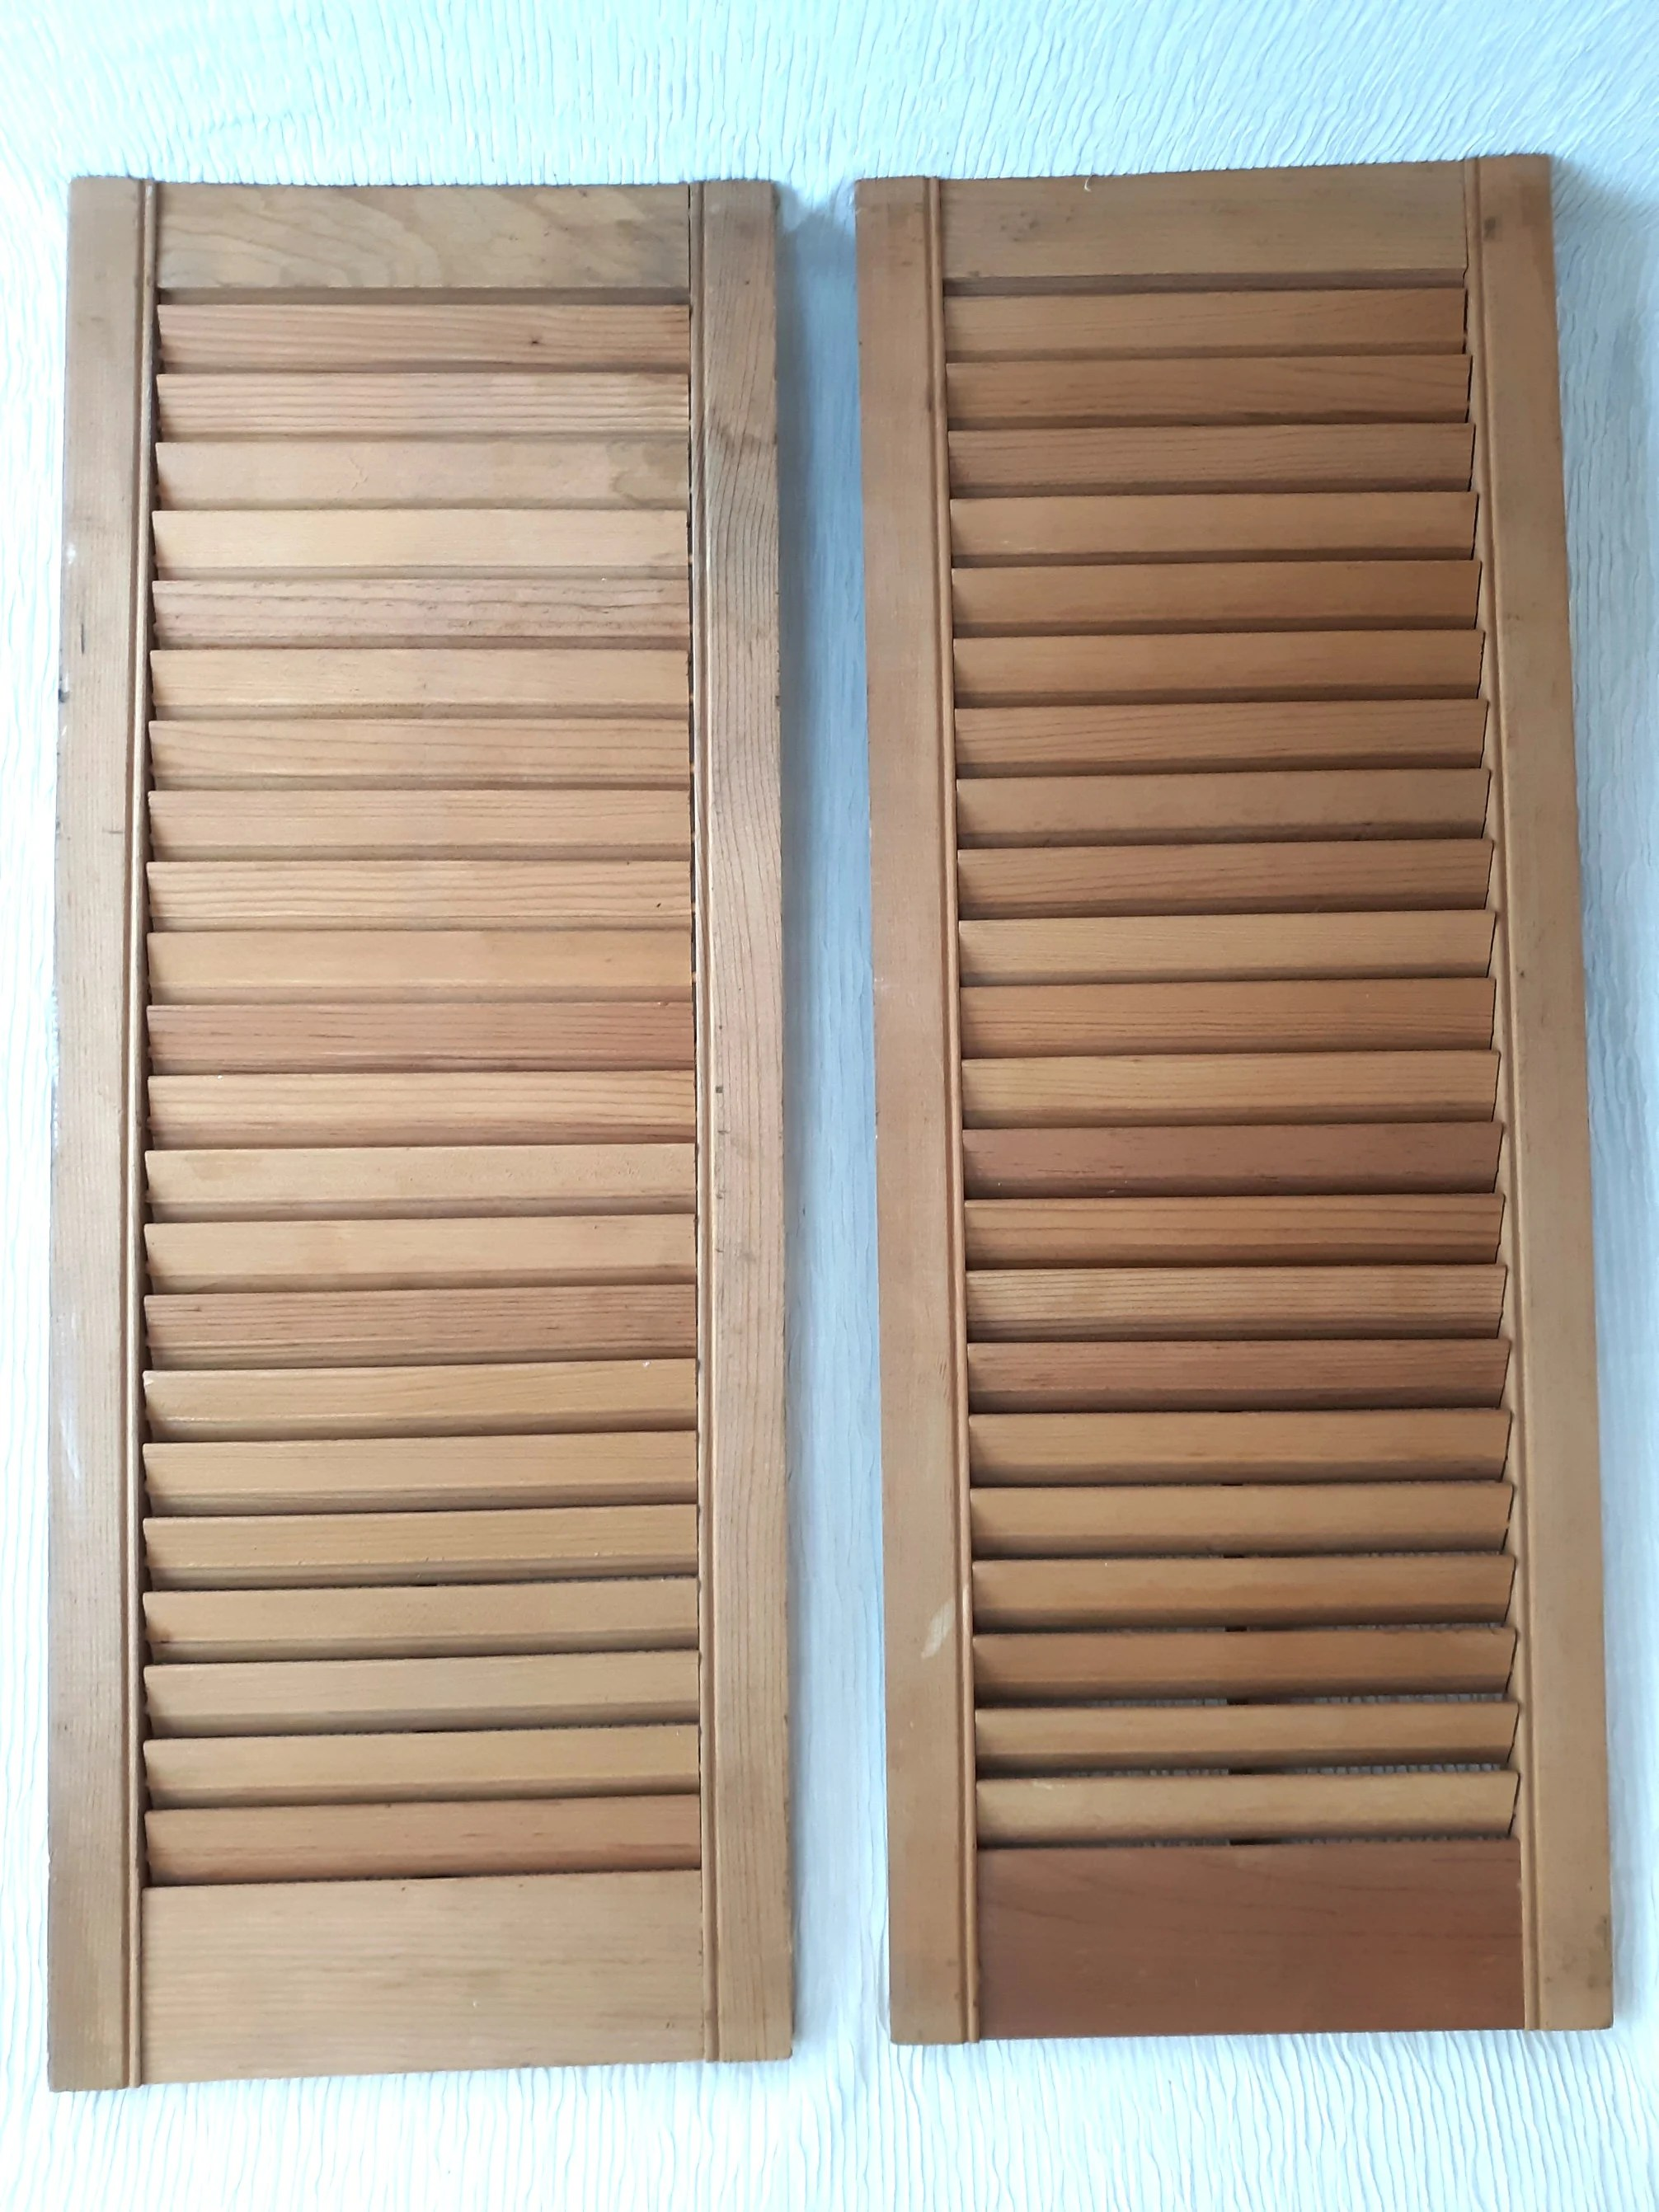 Vintage Pair Wooden Interior Plantation Style Louvered Window Shutters Natural Wood Color Kitchen Cabinet Doors Rustic Decor Nos